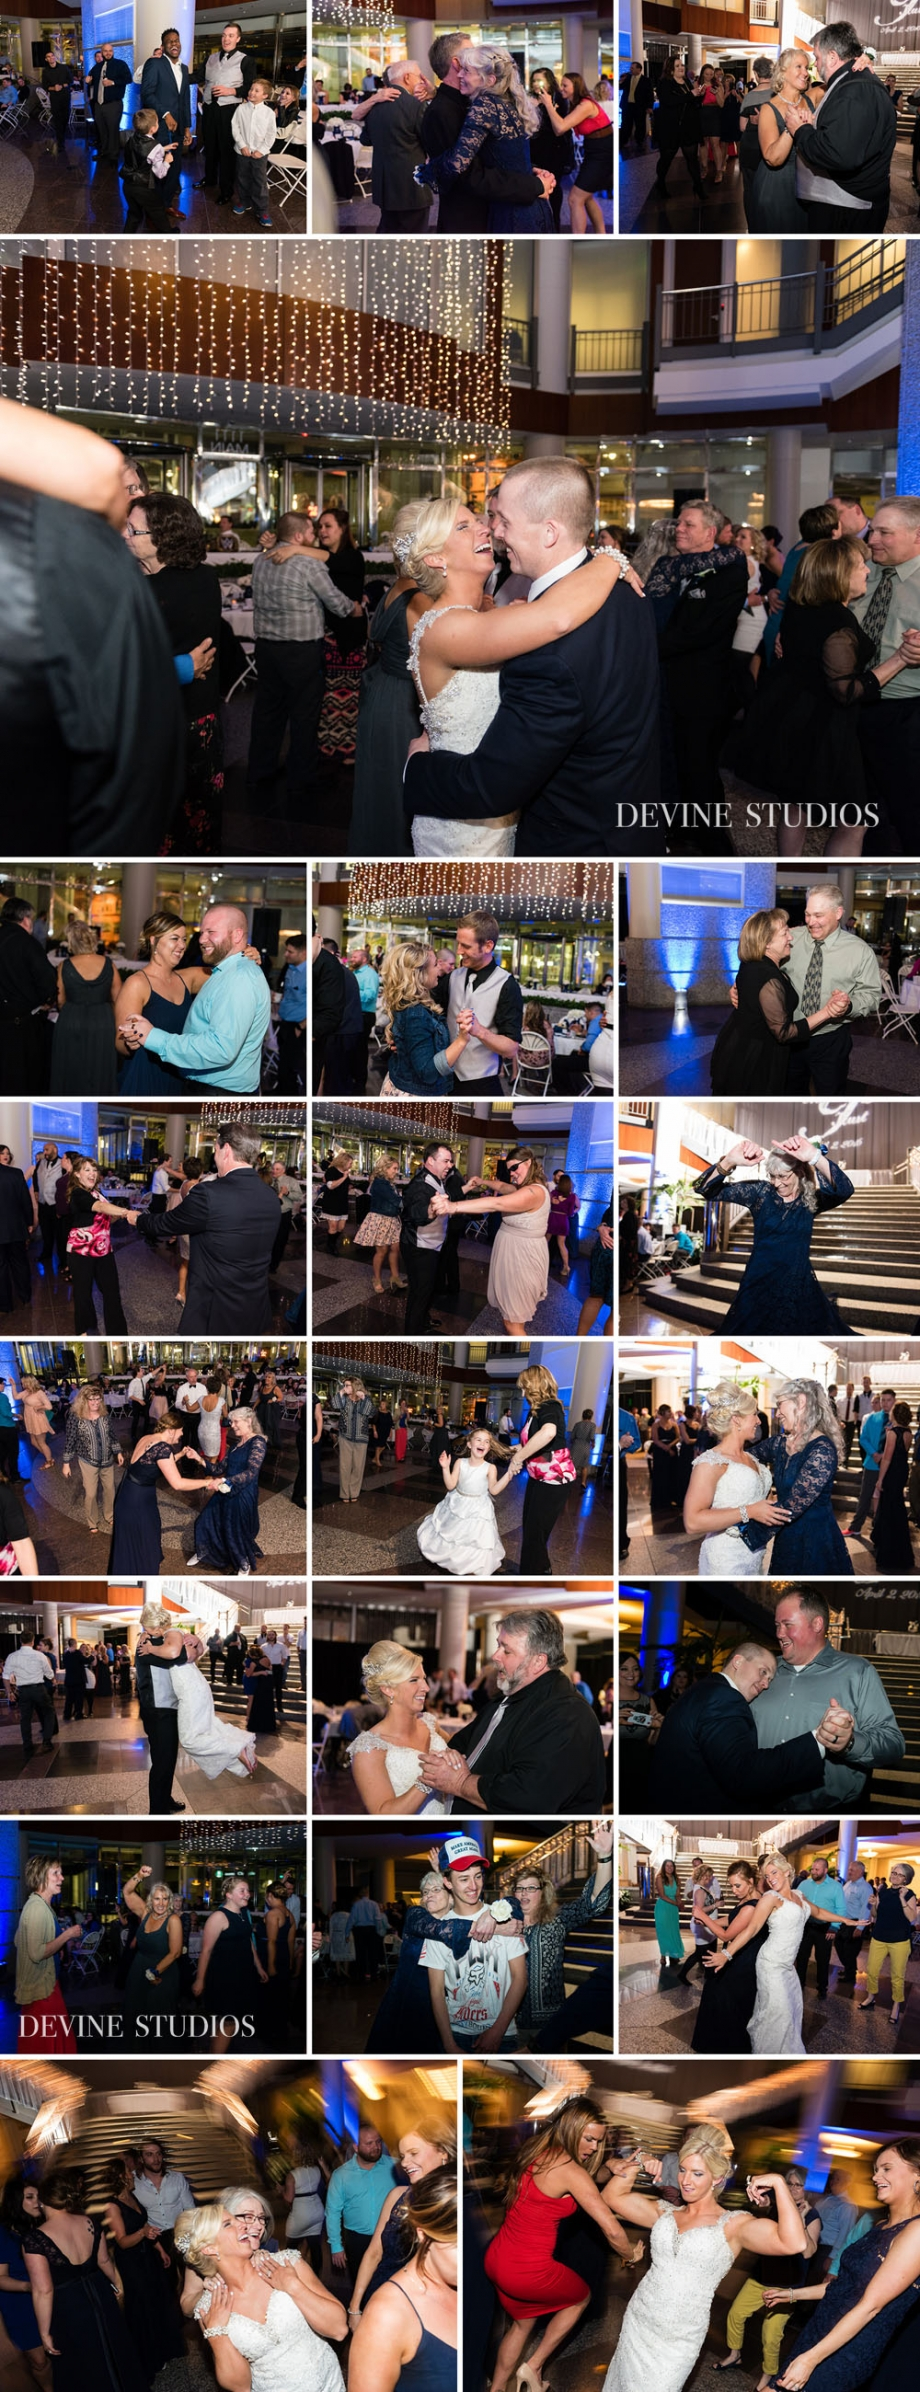 http://devinestudios.com/boudoir/wp-content/uploads/2016/05/10-839-post/Kansas-City-Wedding-Photography-Town-Pavilion-photojournalist-photographers20(pp_w920_h2392).jpg